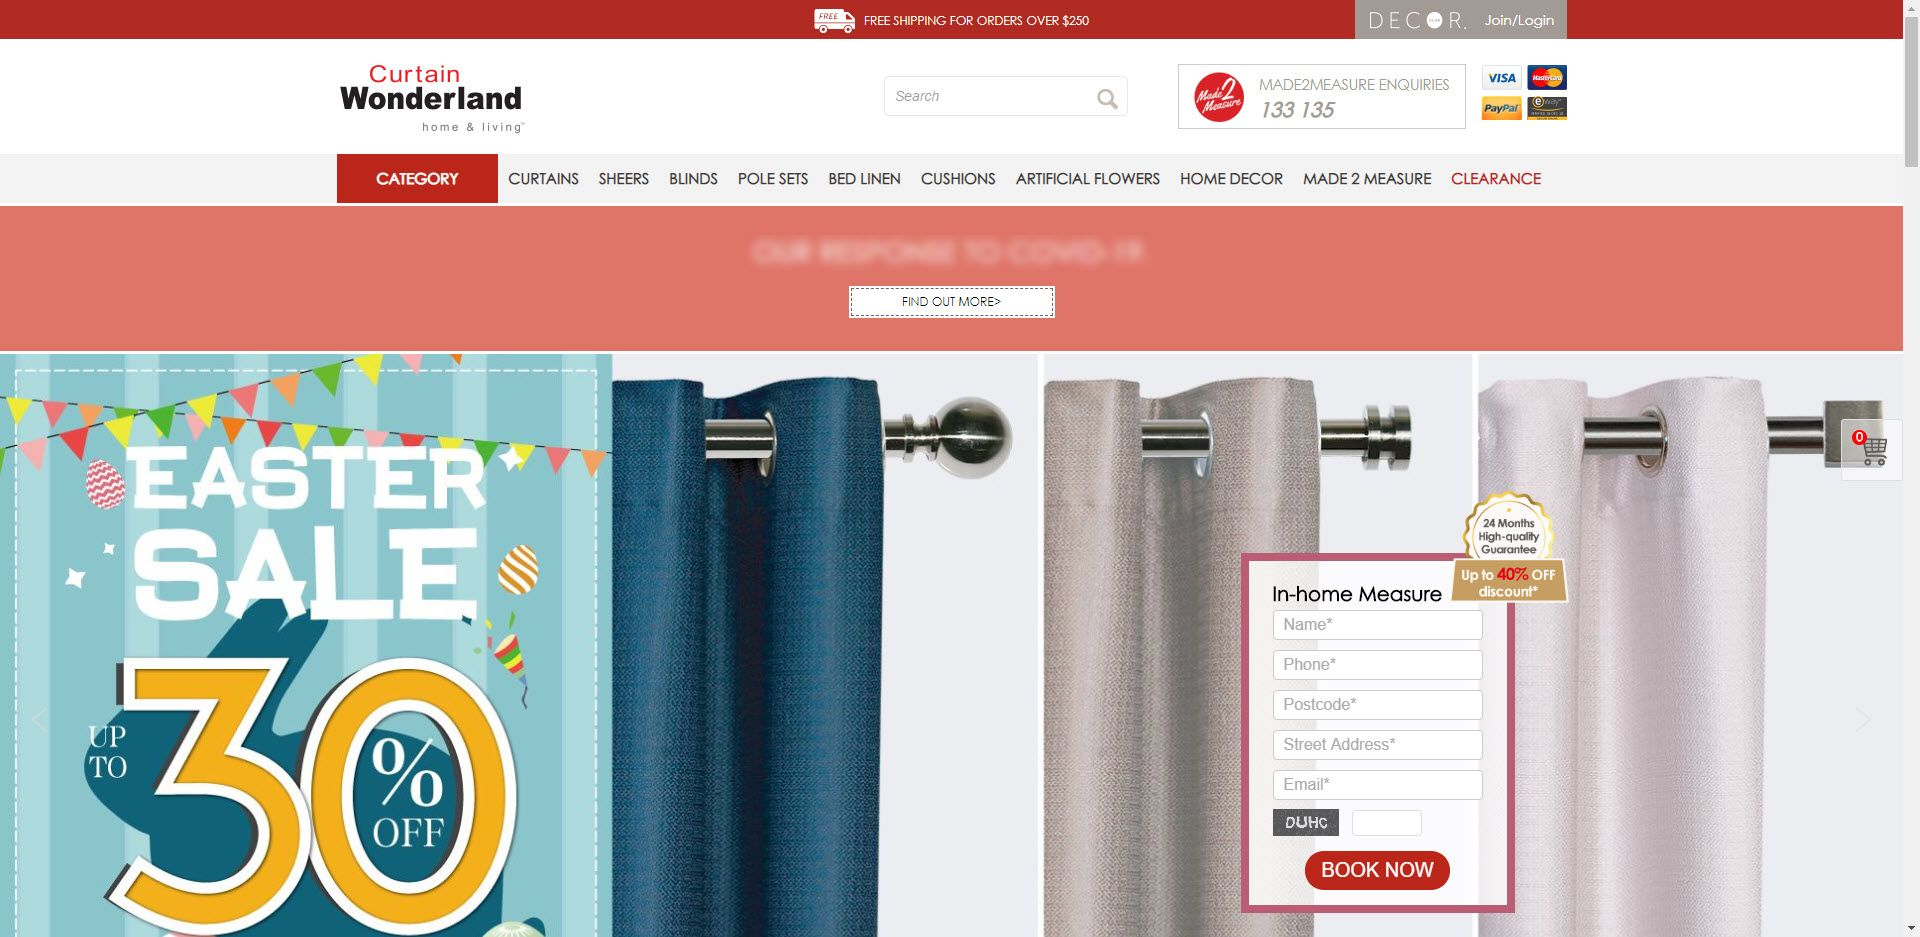 Home Decor Affiliate programs - Curtain Wonderland Home